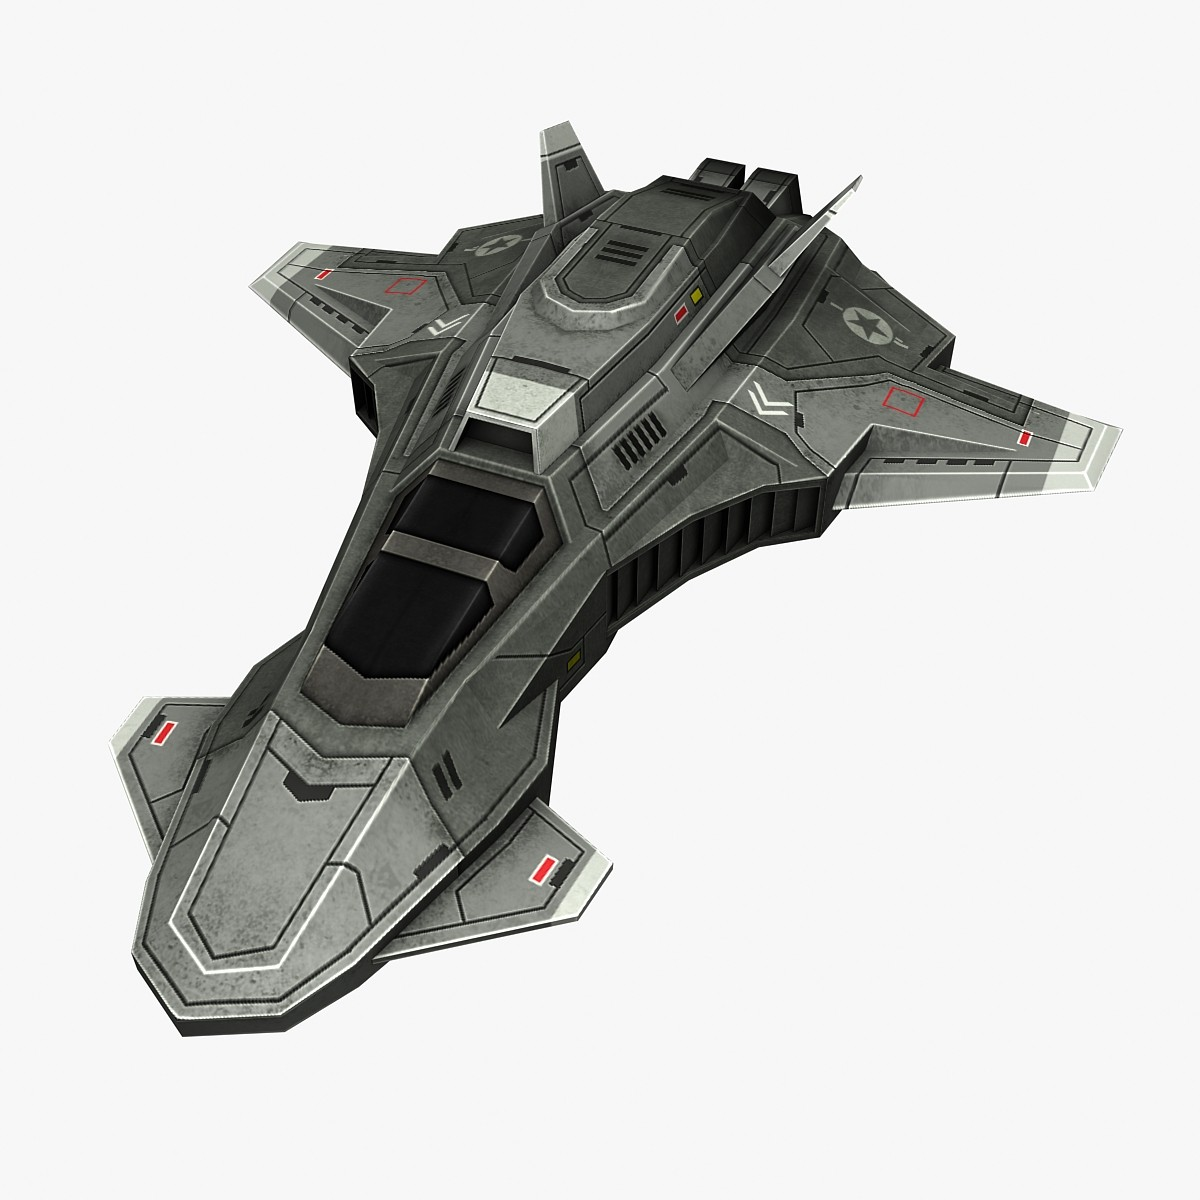 space_frigate_5_preview_0.jpg